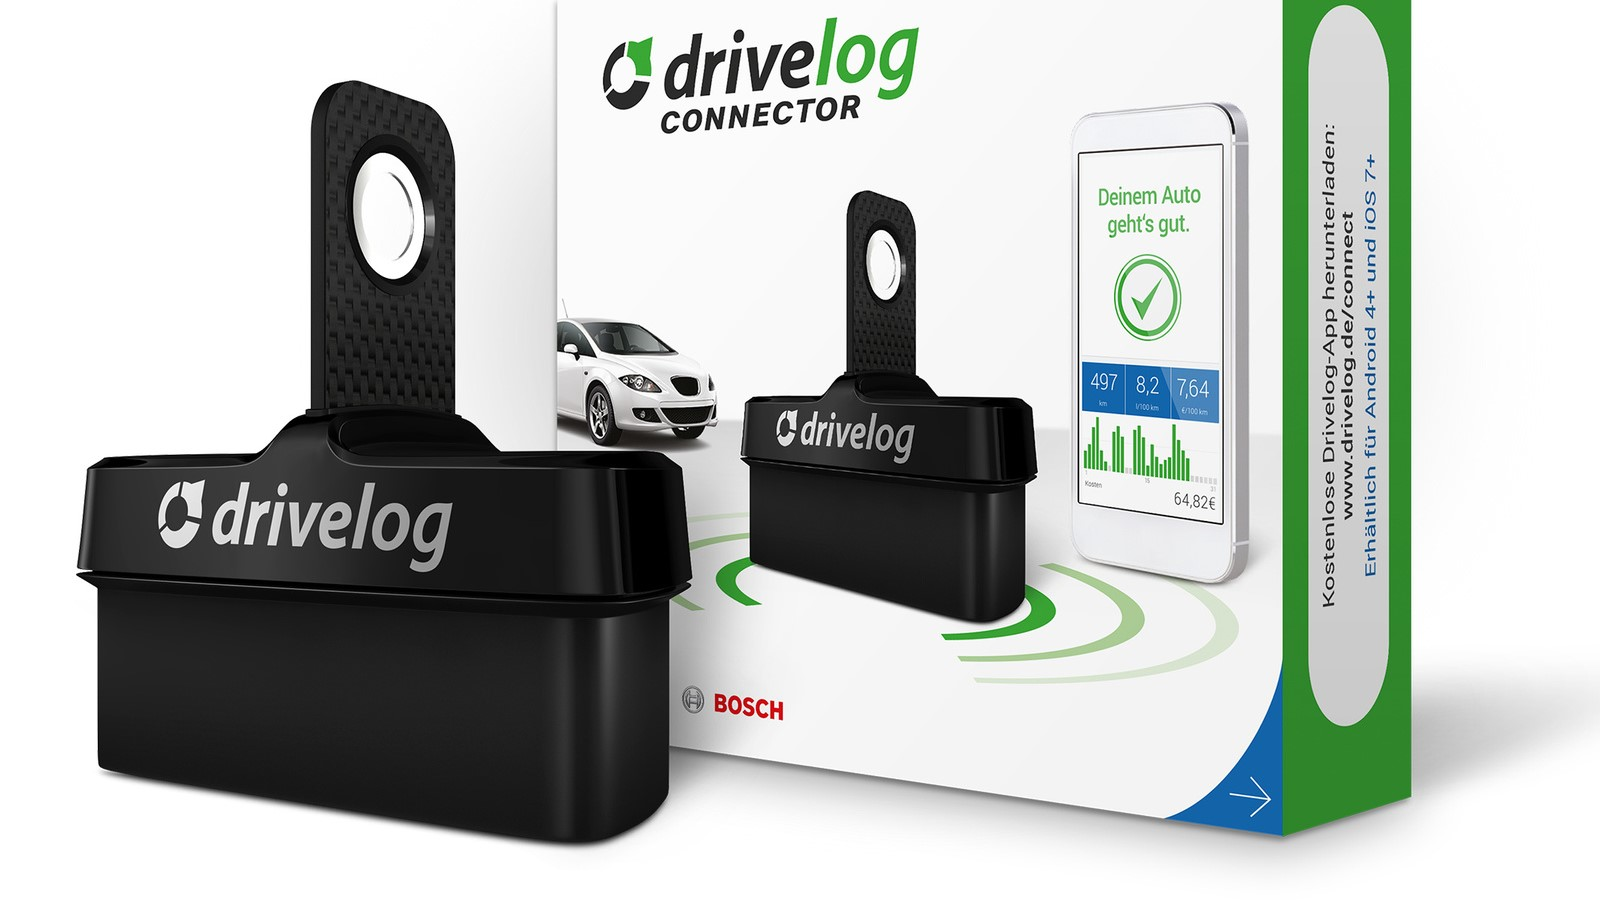 New: Drivelog Connect displays car-related information on